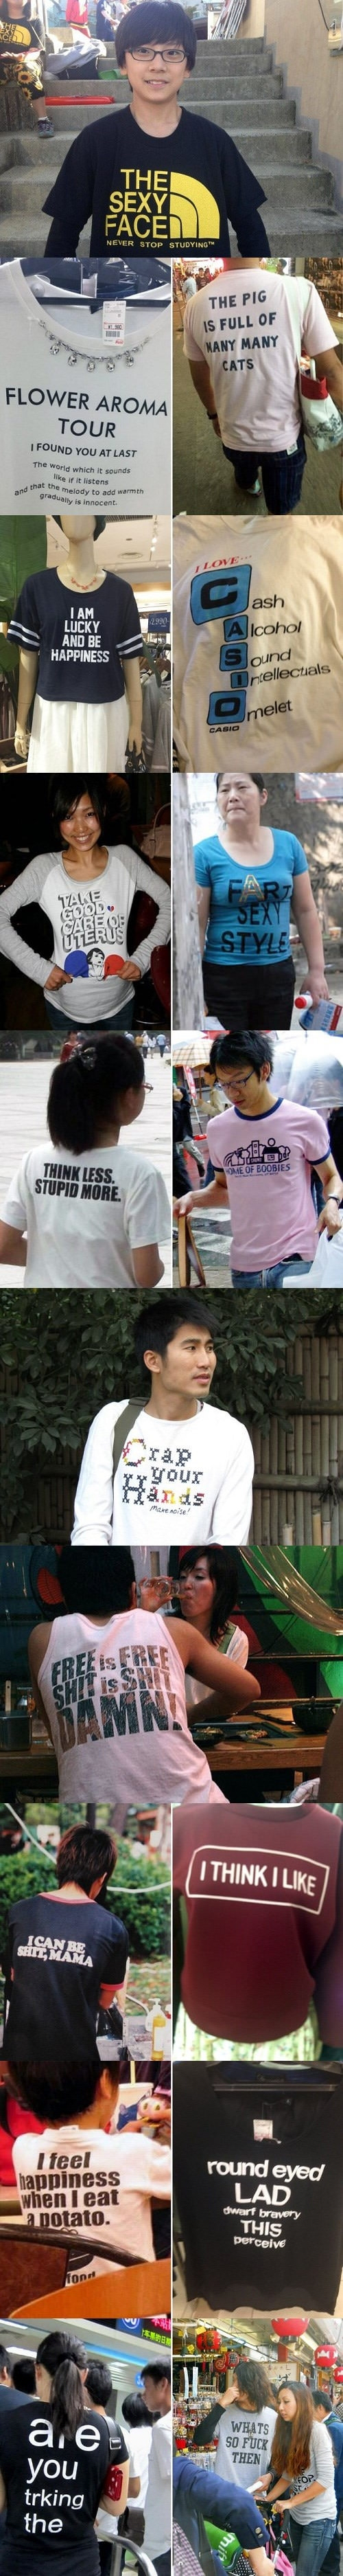 Never trust what is printed on your shirt